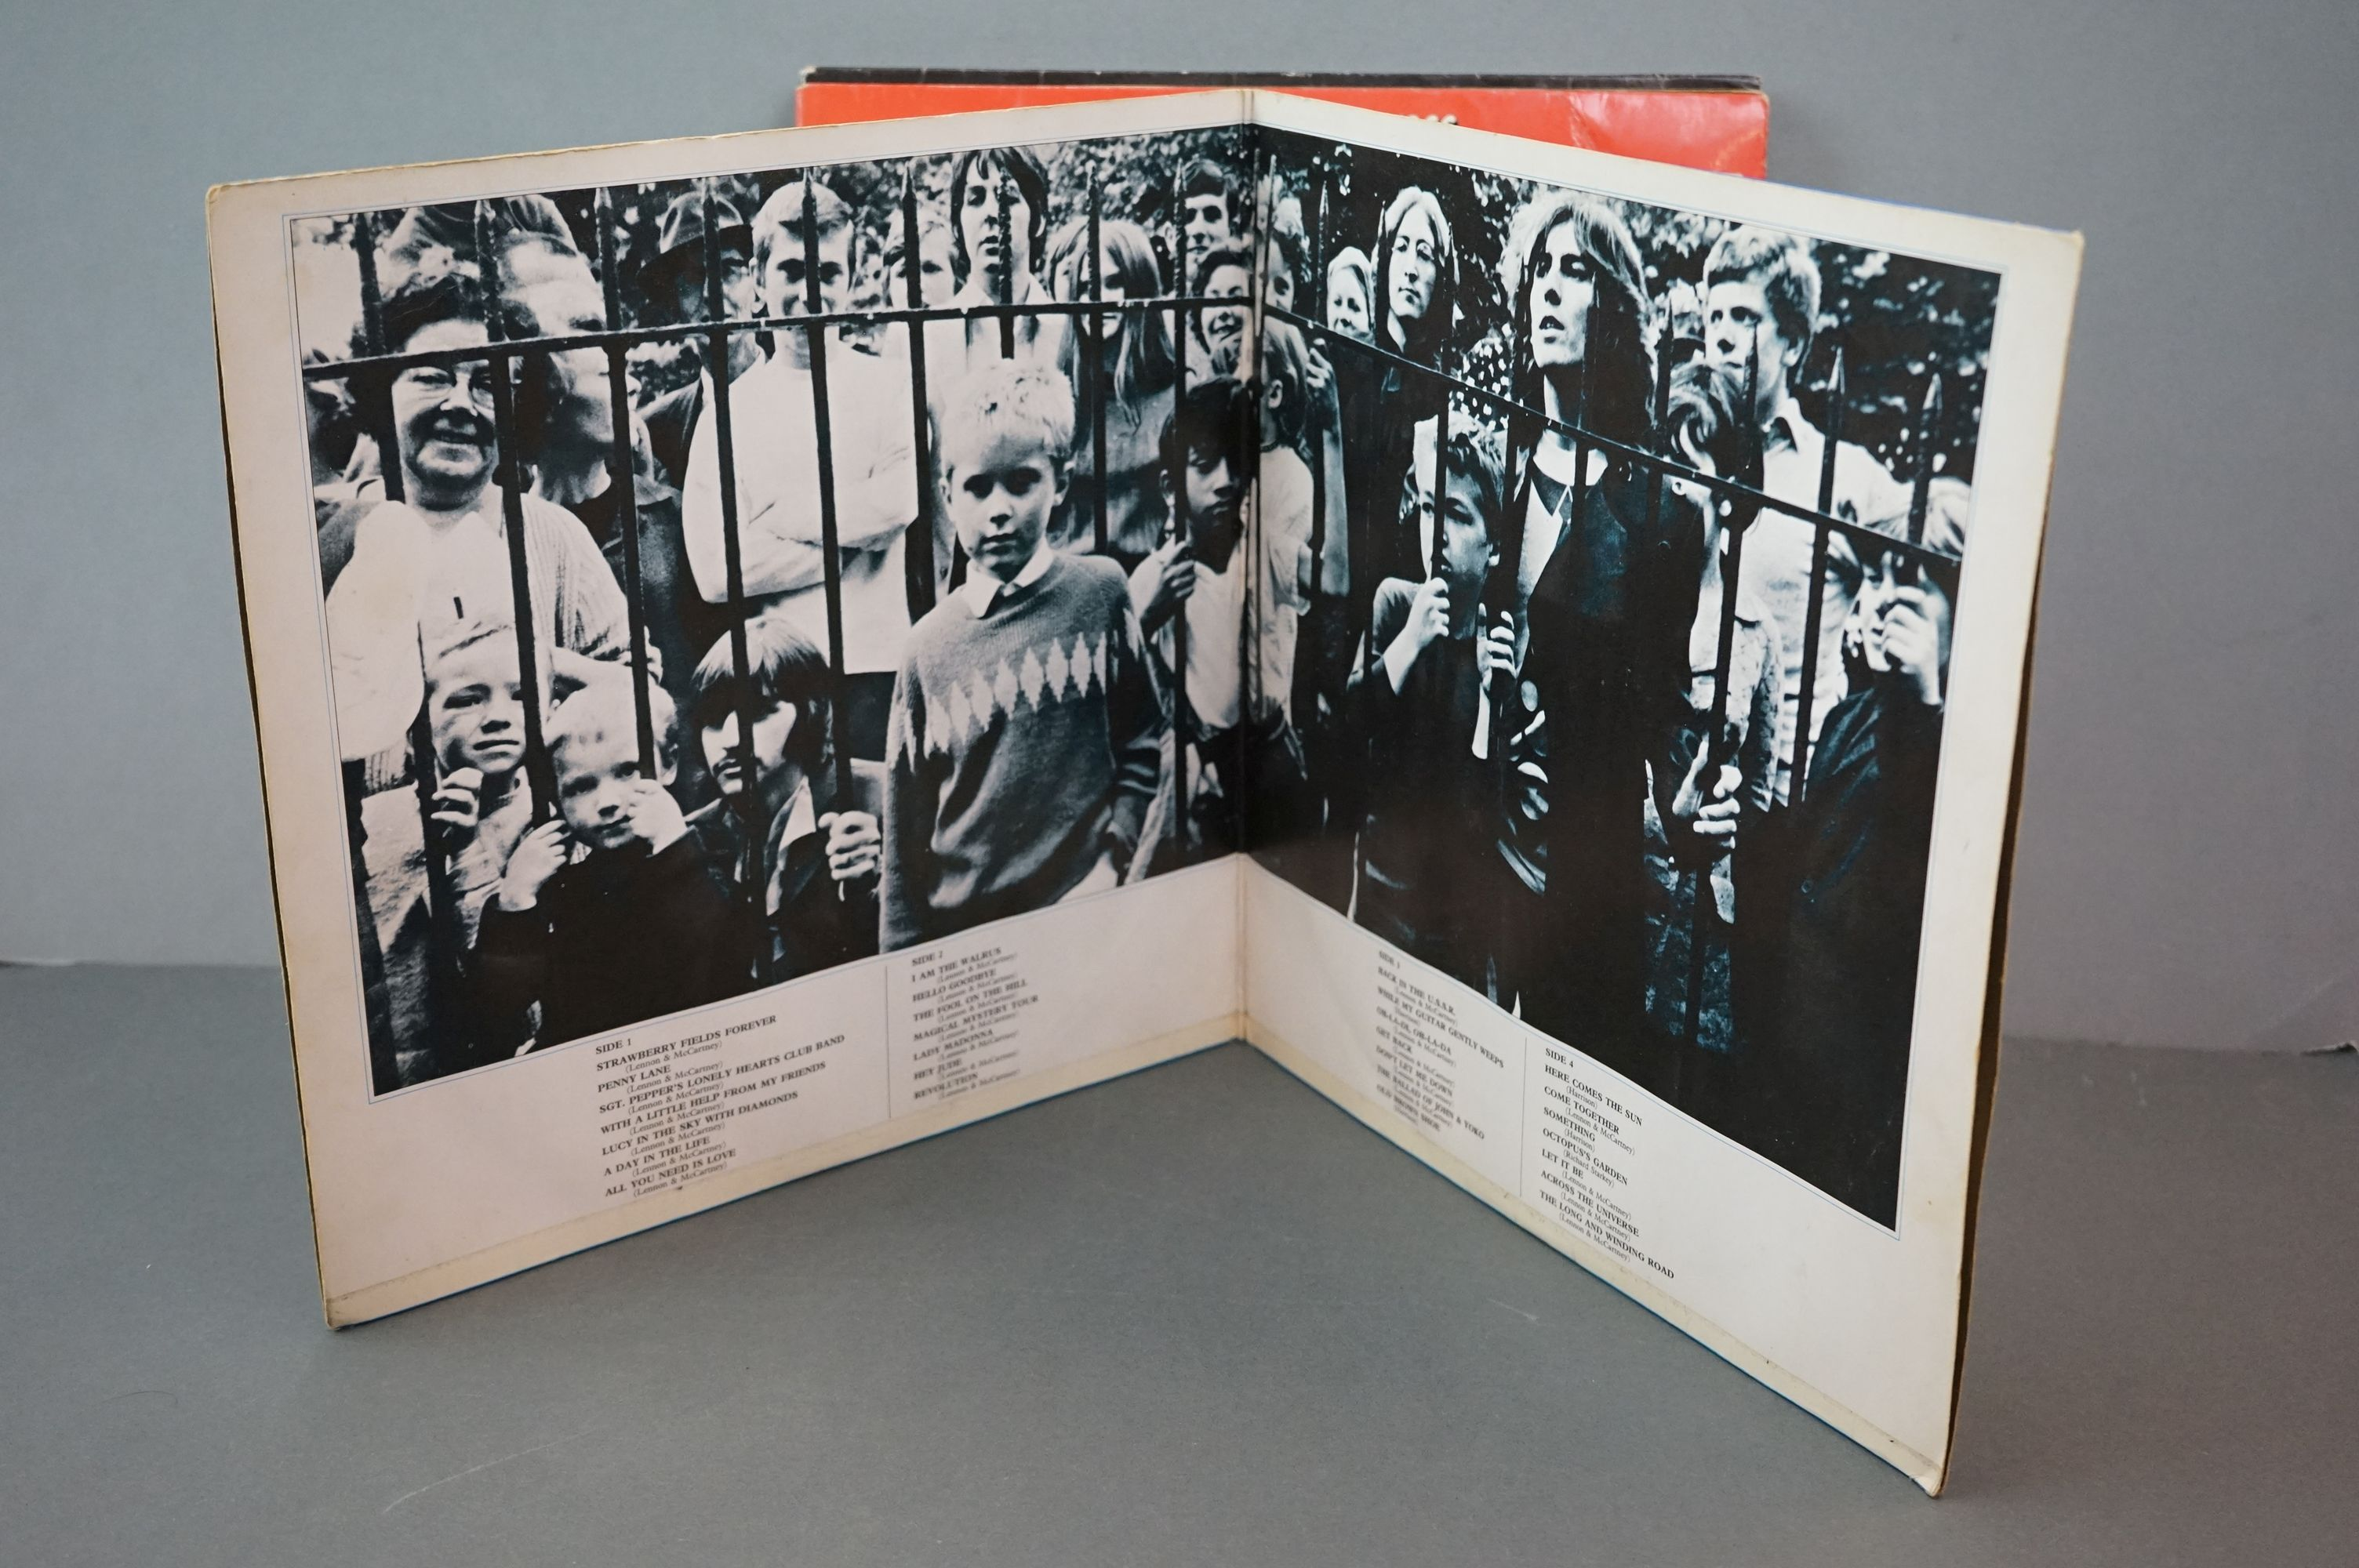 Vinyl - The Beatles and band members LPs to include 1962-1966 and 1967-1970 (black vinyl), Wings - Image 5 of 11